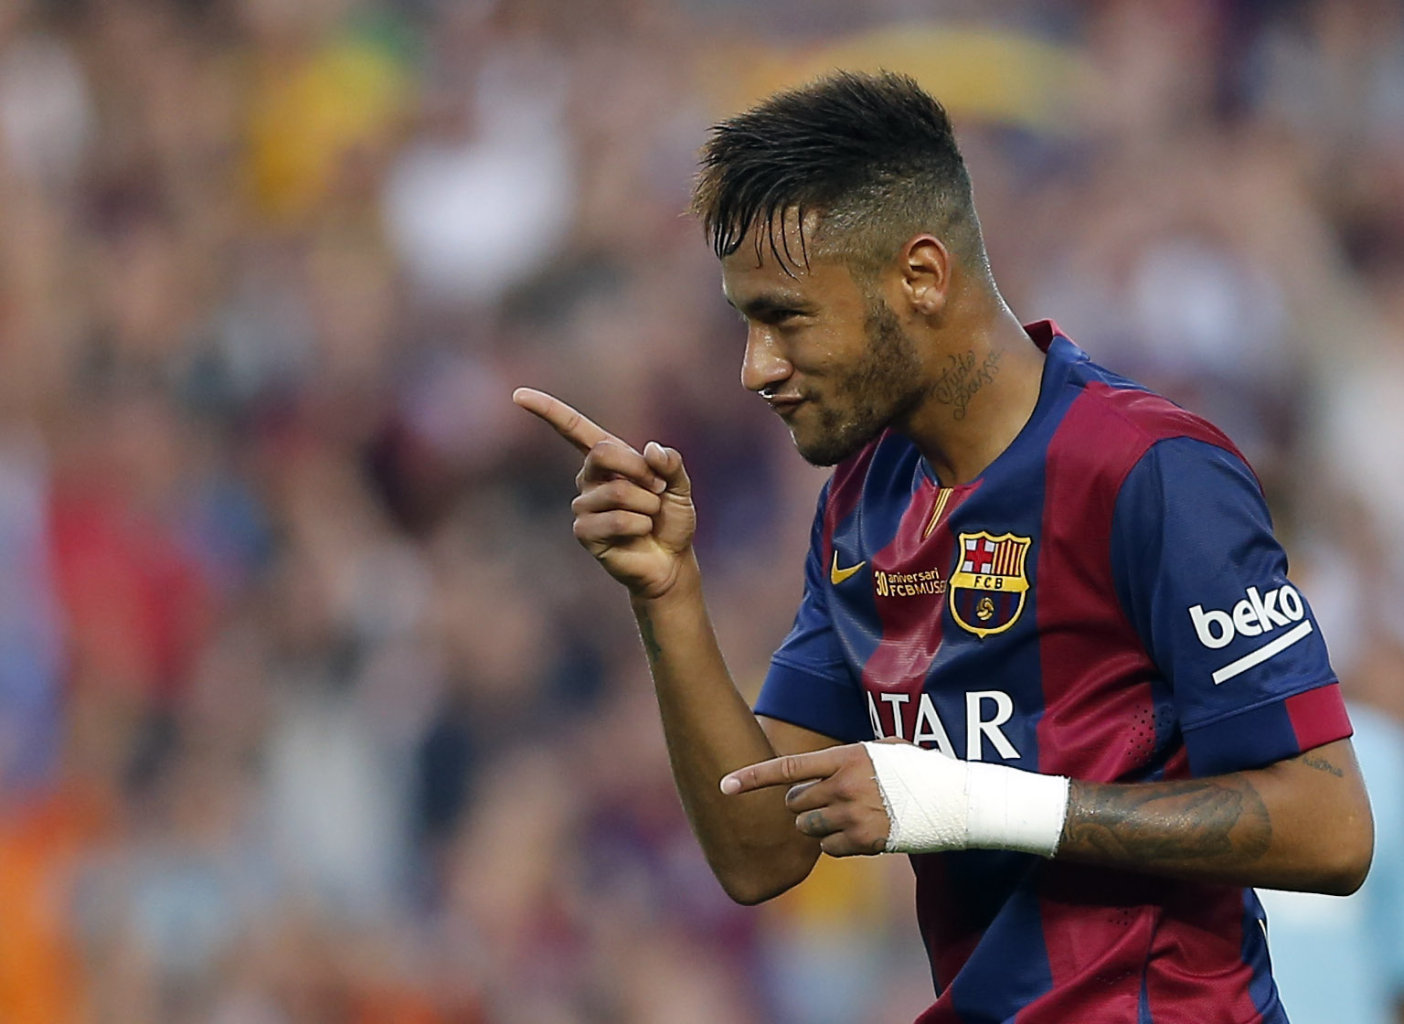 Neymar goal celebration for Barcelona in 2014-15